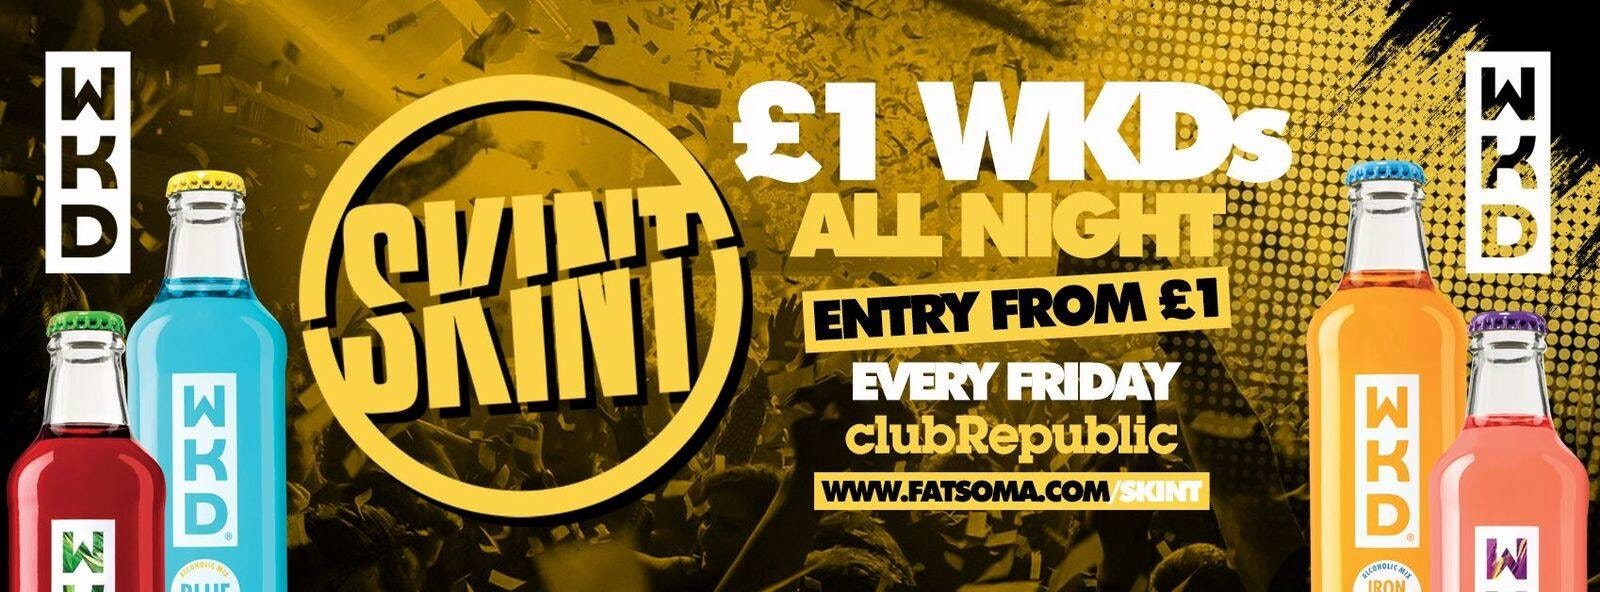 ★ Skint Fridays ★ £1 WKD's ★ £1 Entry ★ Club Republic ★